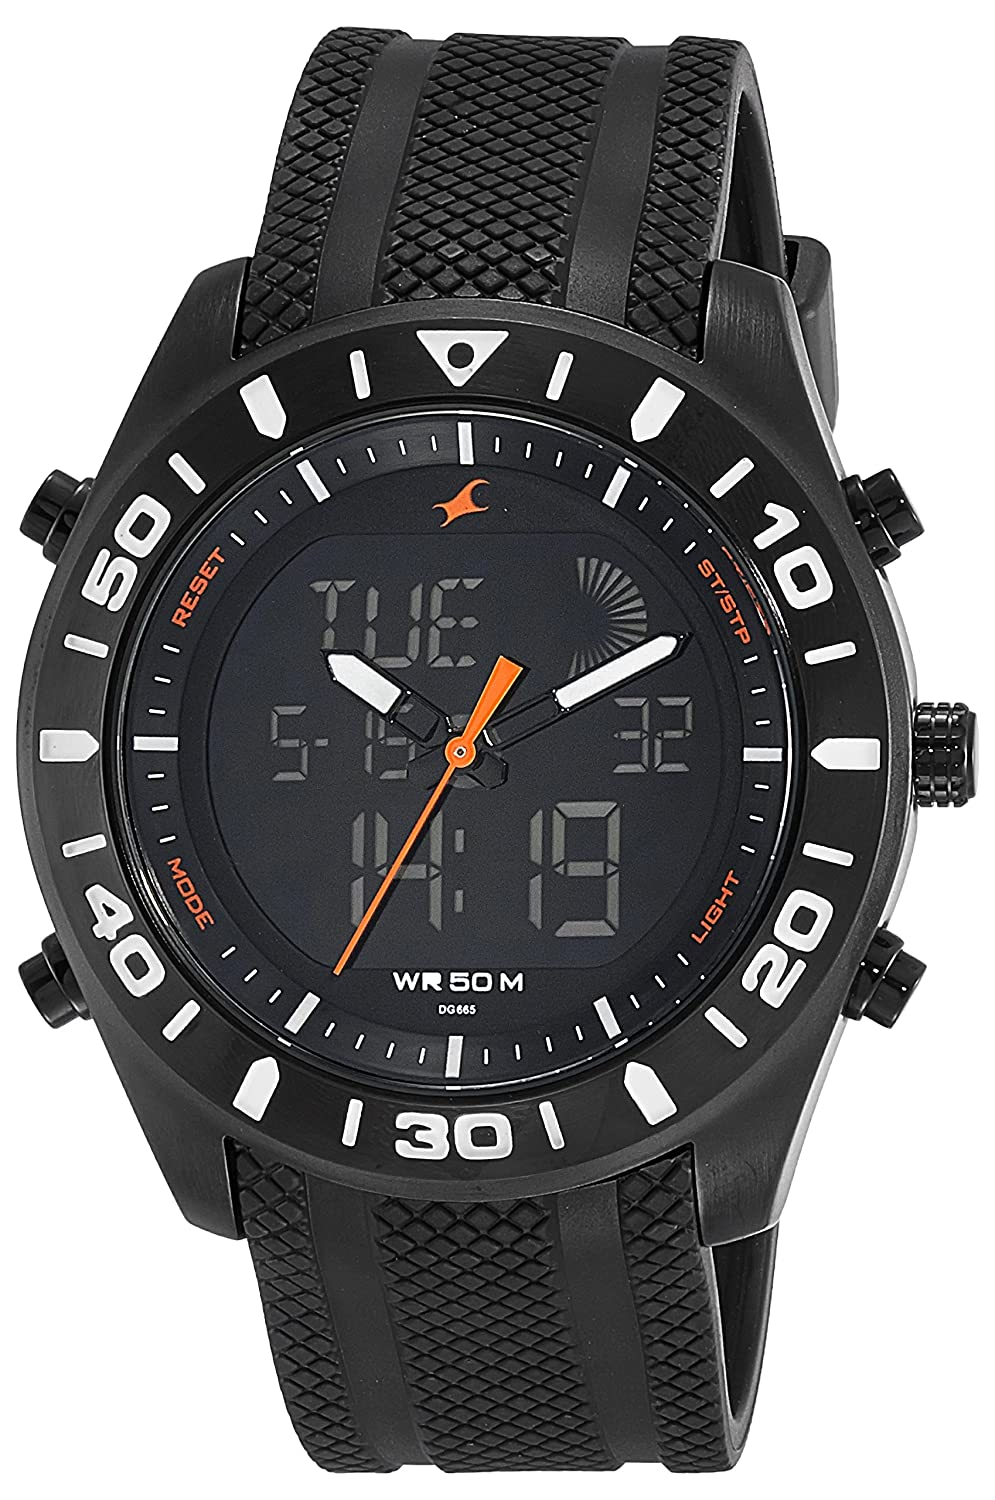 Fastrack Best Sports Watch Brands in India 2020